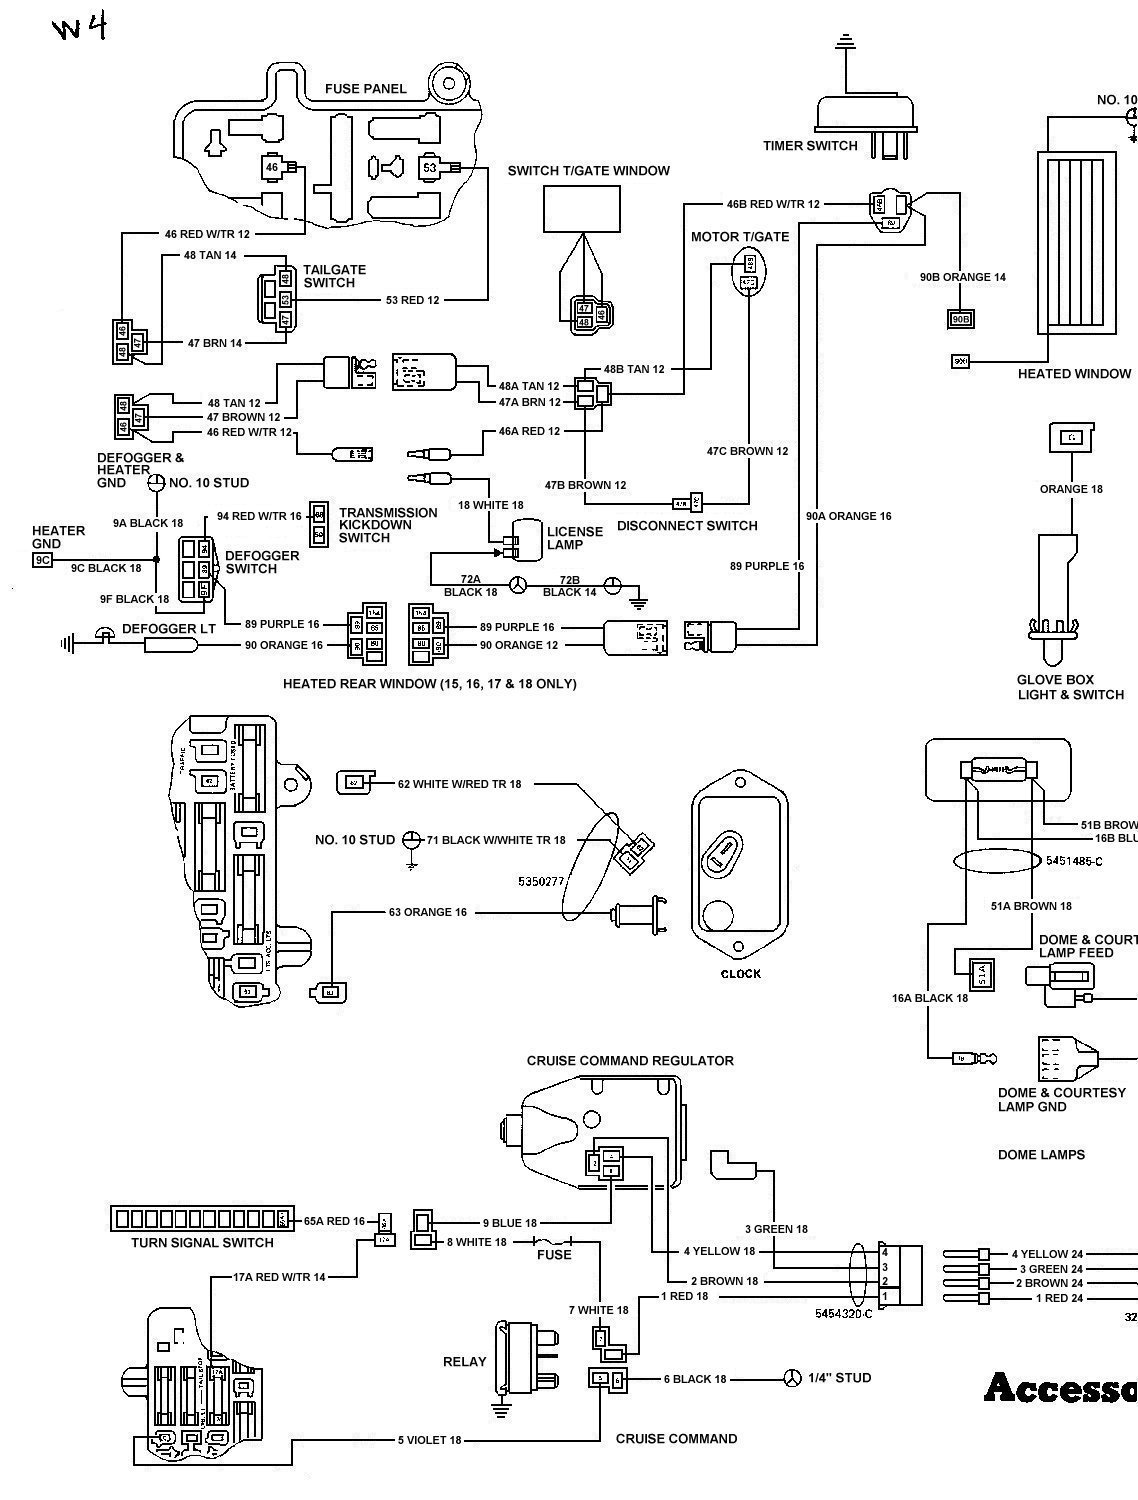 1982 Jeep Cj7 Ac Wiring Diagram Wiring Diagram Approval A Approval A Zaafran It